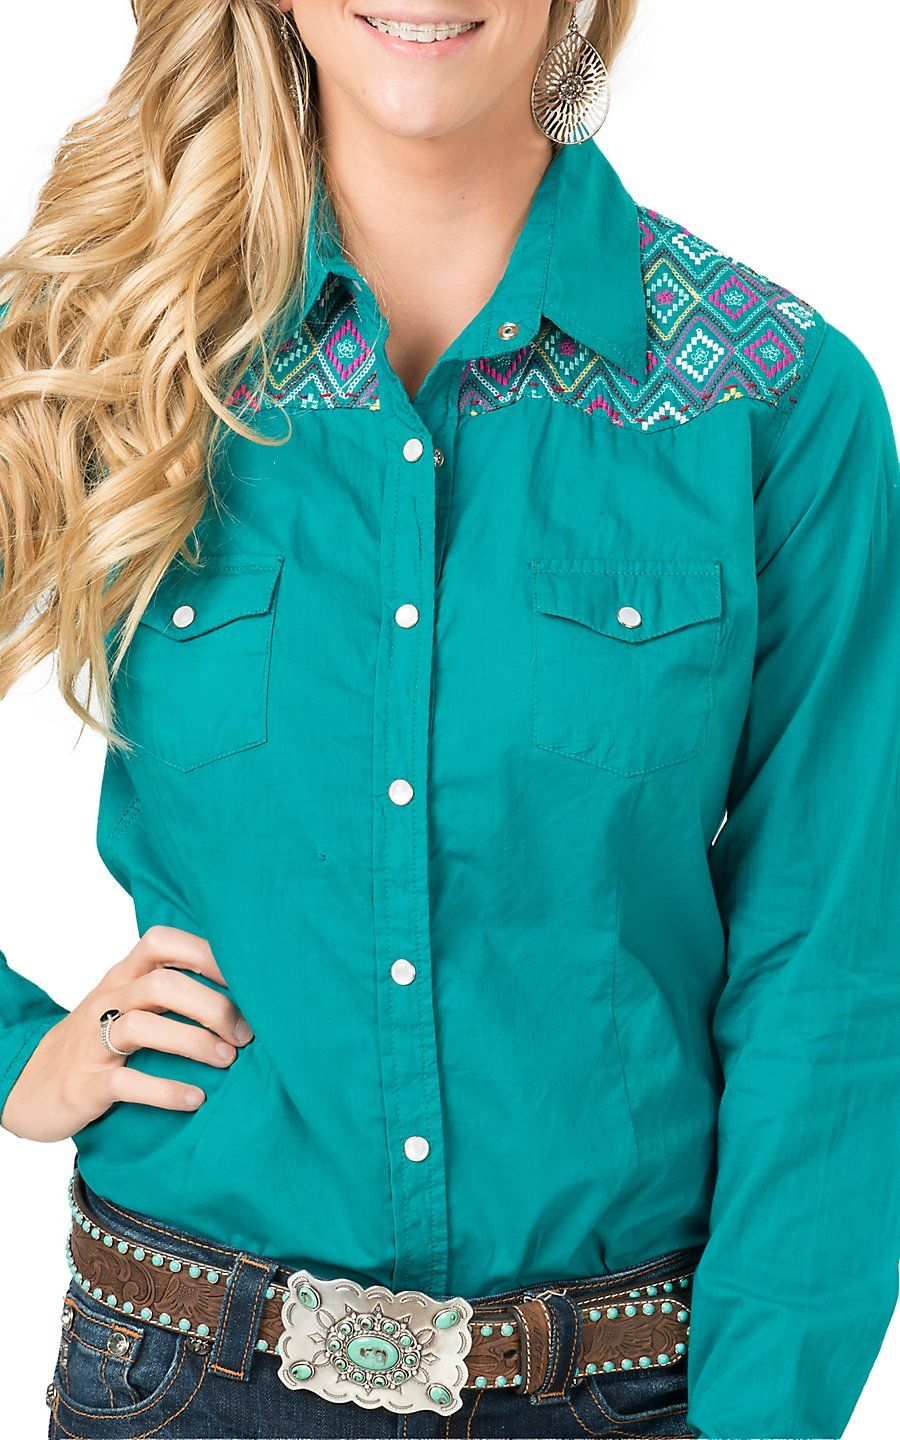 6b0220f557ba25 Panhandle Women's Turquoise with Aztec Embroidery Long Sleeve Western Shirt  | Cavender's